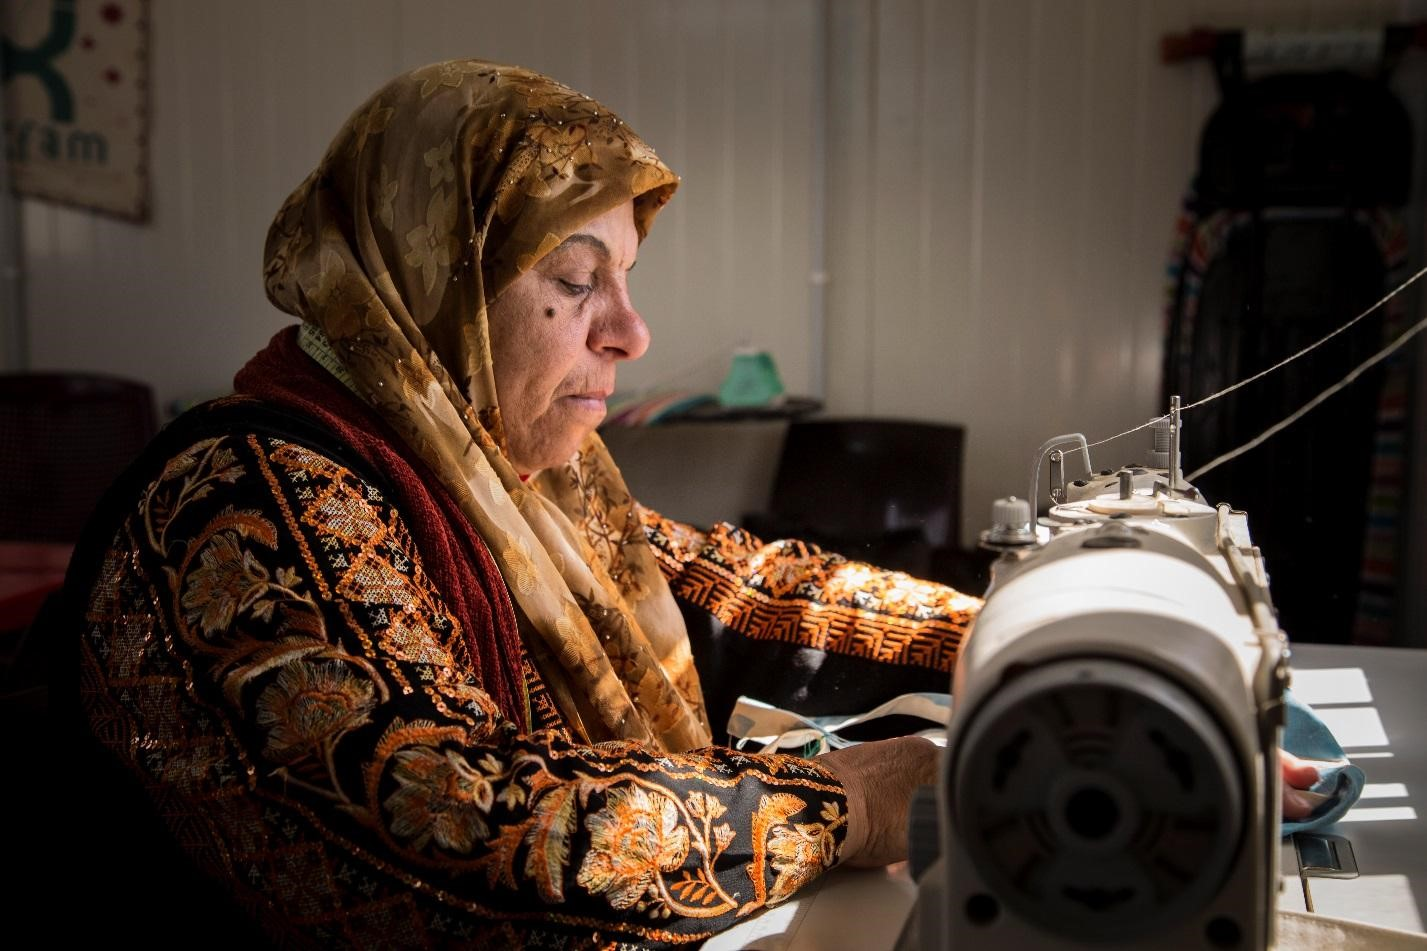 Above: Fatima sews bags from old refugee tents as part of an Oxfam project to support women in finding paid work. Photo credit: Nesma Alnsour/Oxfam